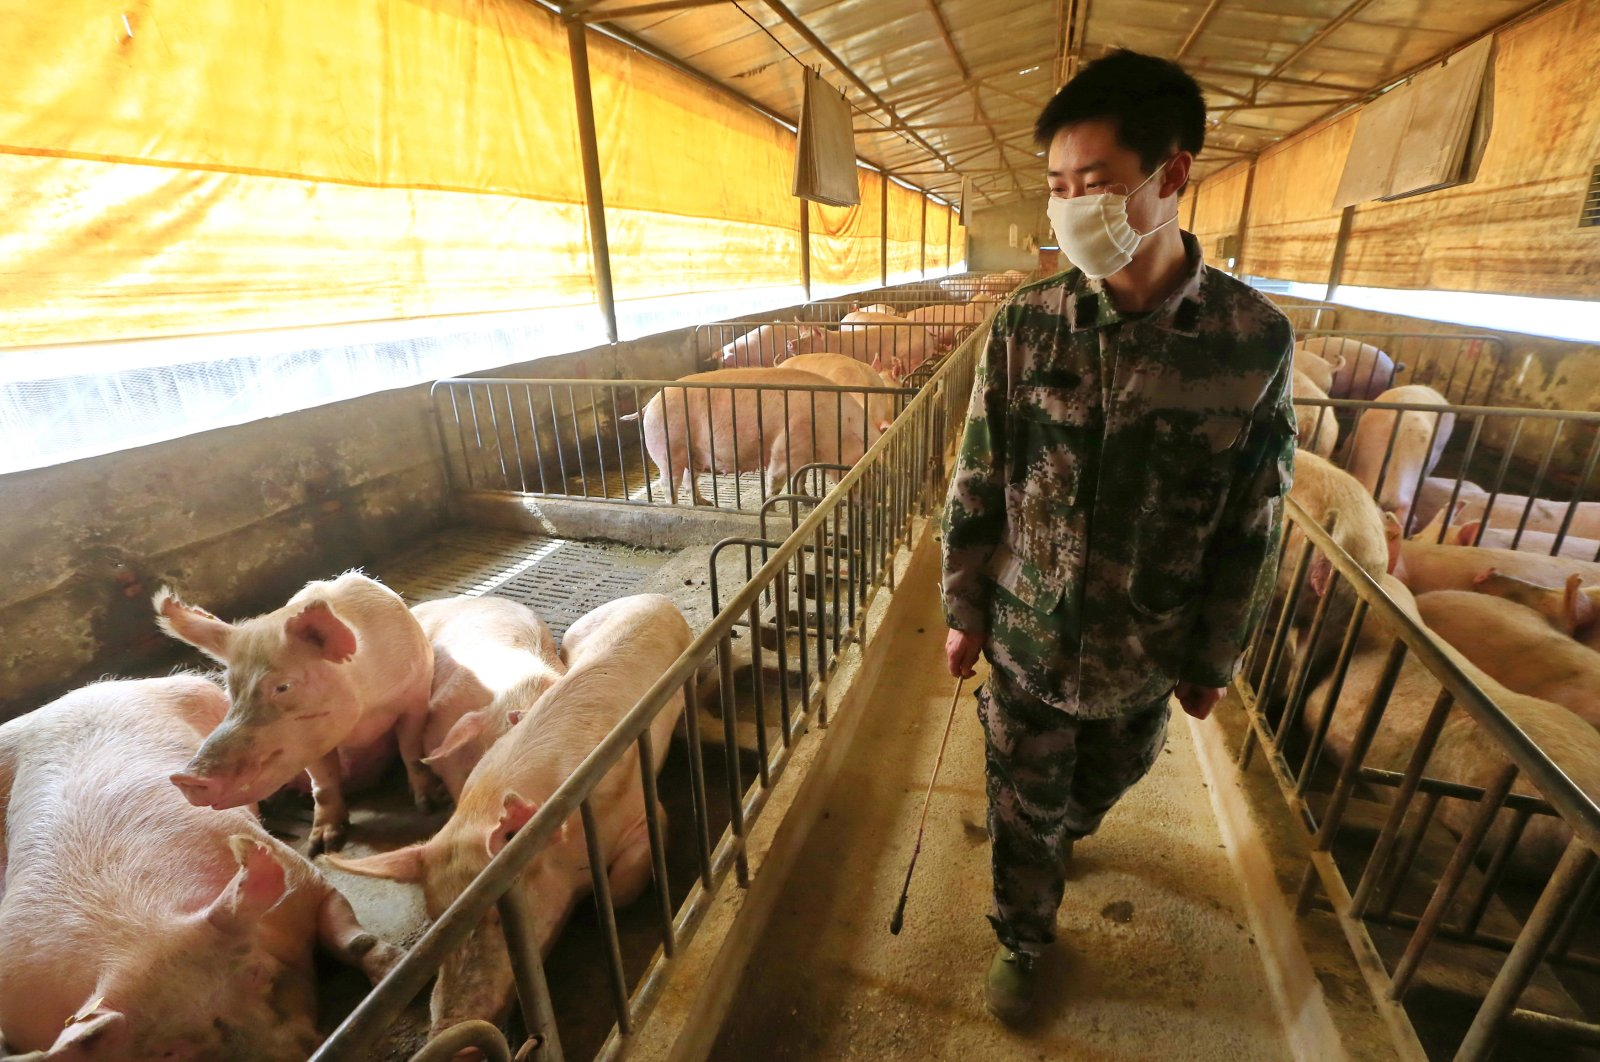 A masked worker checks the pigs in a hog pen in Suining, Sichuan province, China, February 21, 2020. (EPA Photo)